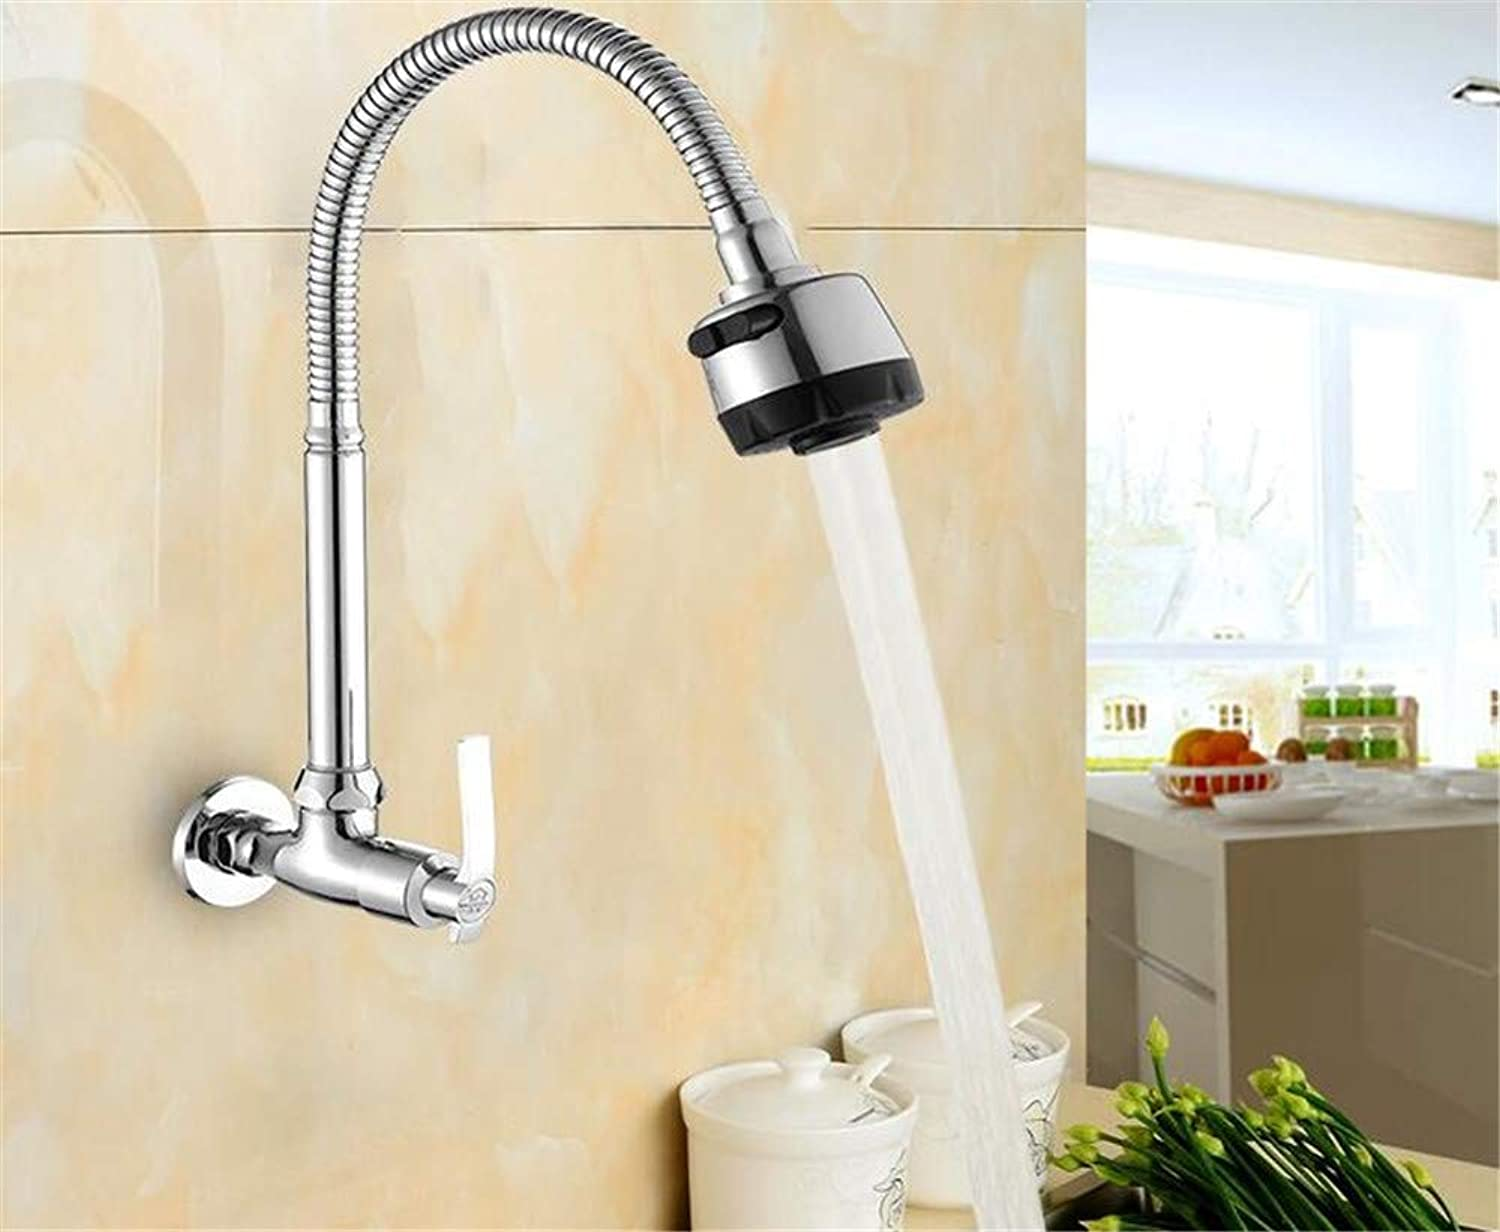 Decorry Brass Wall Mounted Universal Water Kitchen Single Cold Faucet Single Hole Water Tap 360redated Kitchen Faucet with Shower